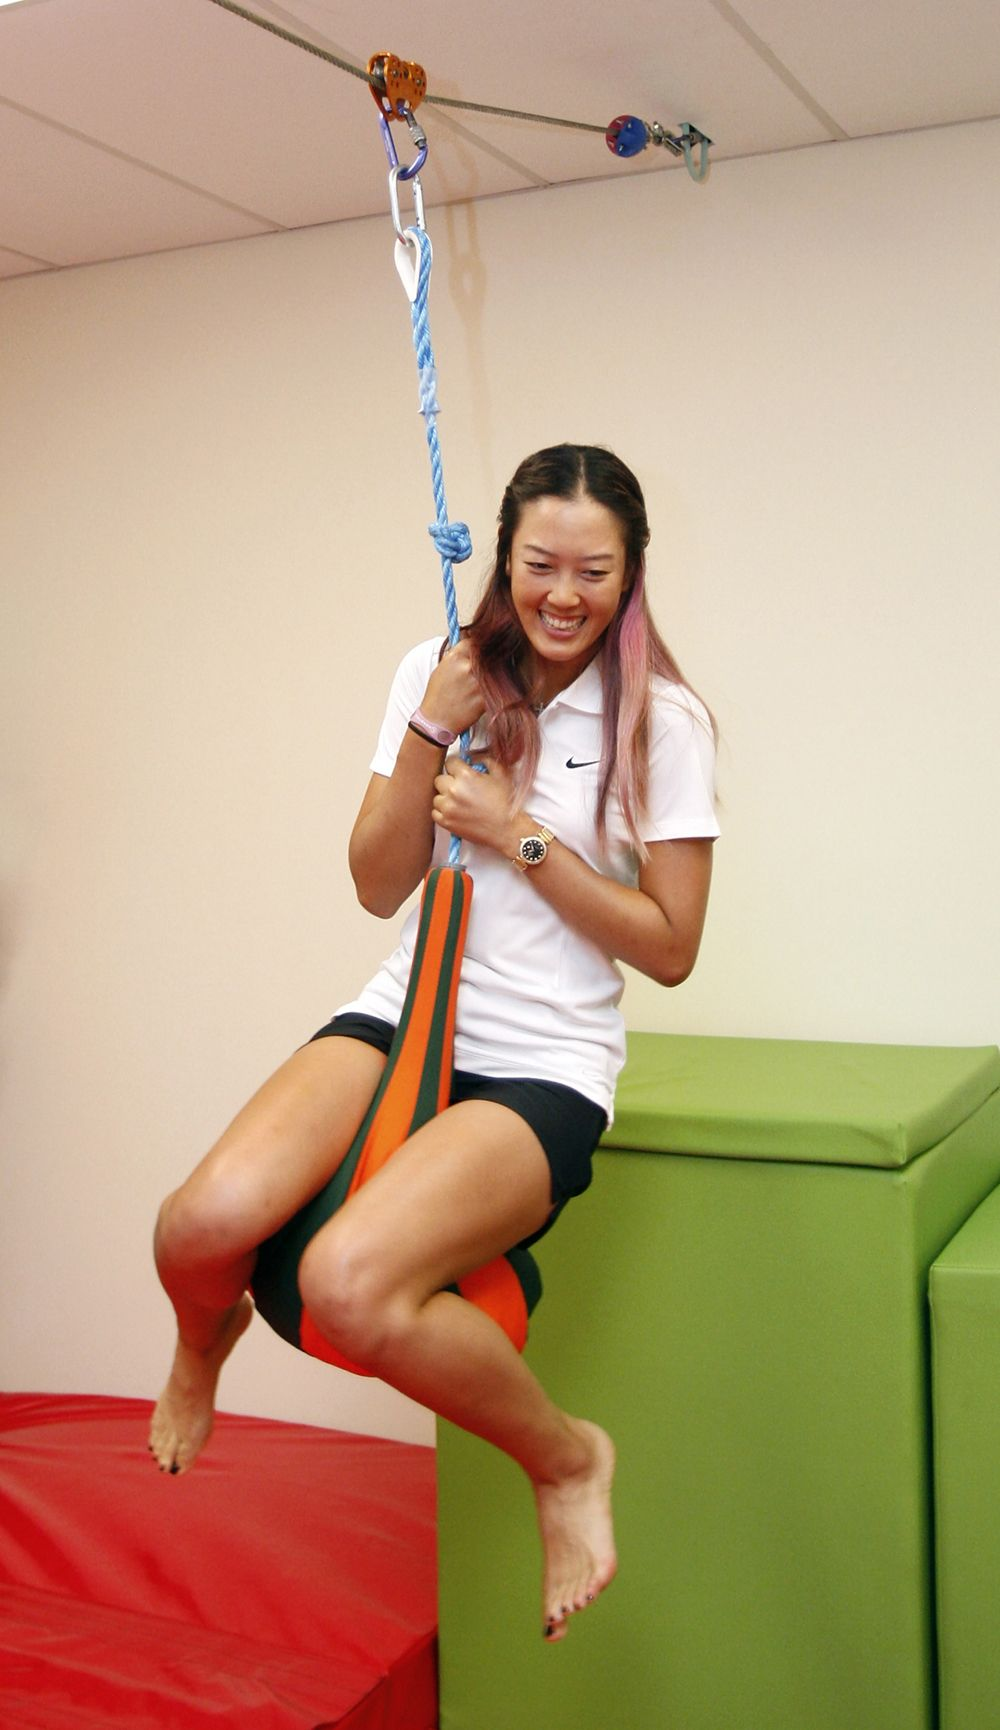 Michelle wie legs nude (59 photos), Topless Celebrity pictures